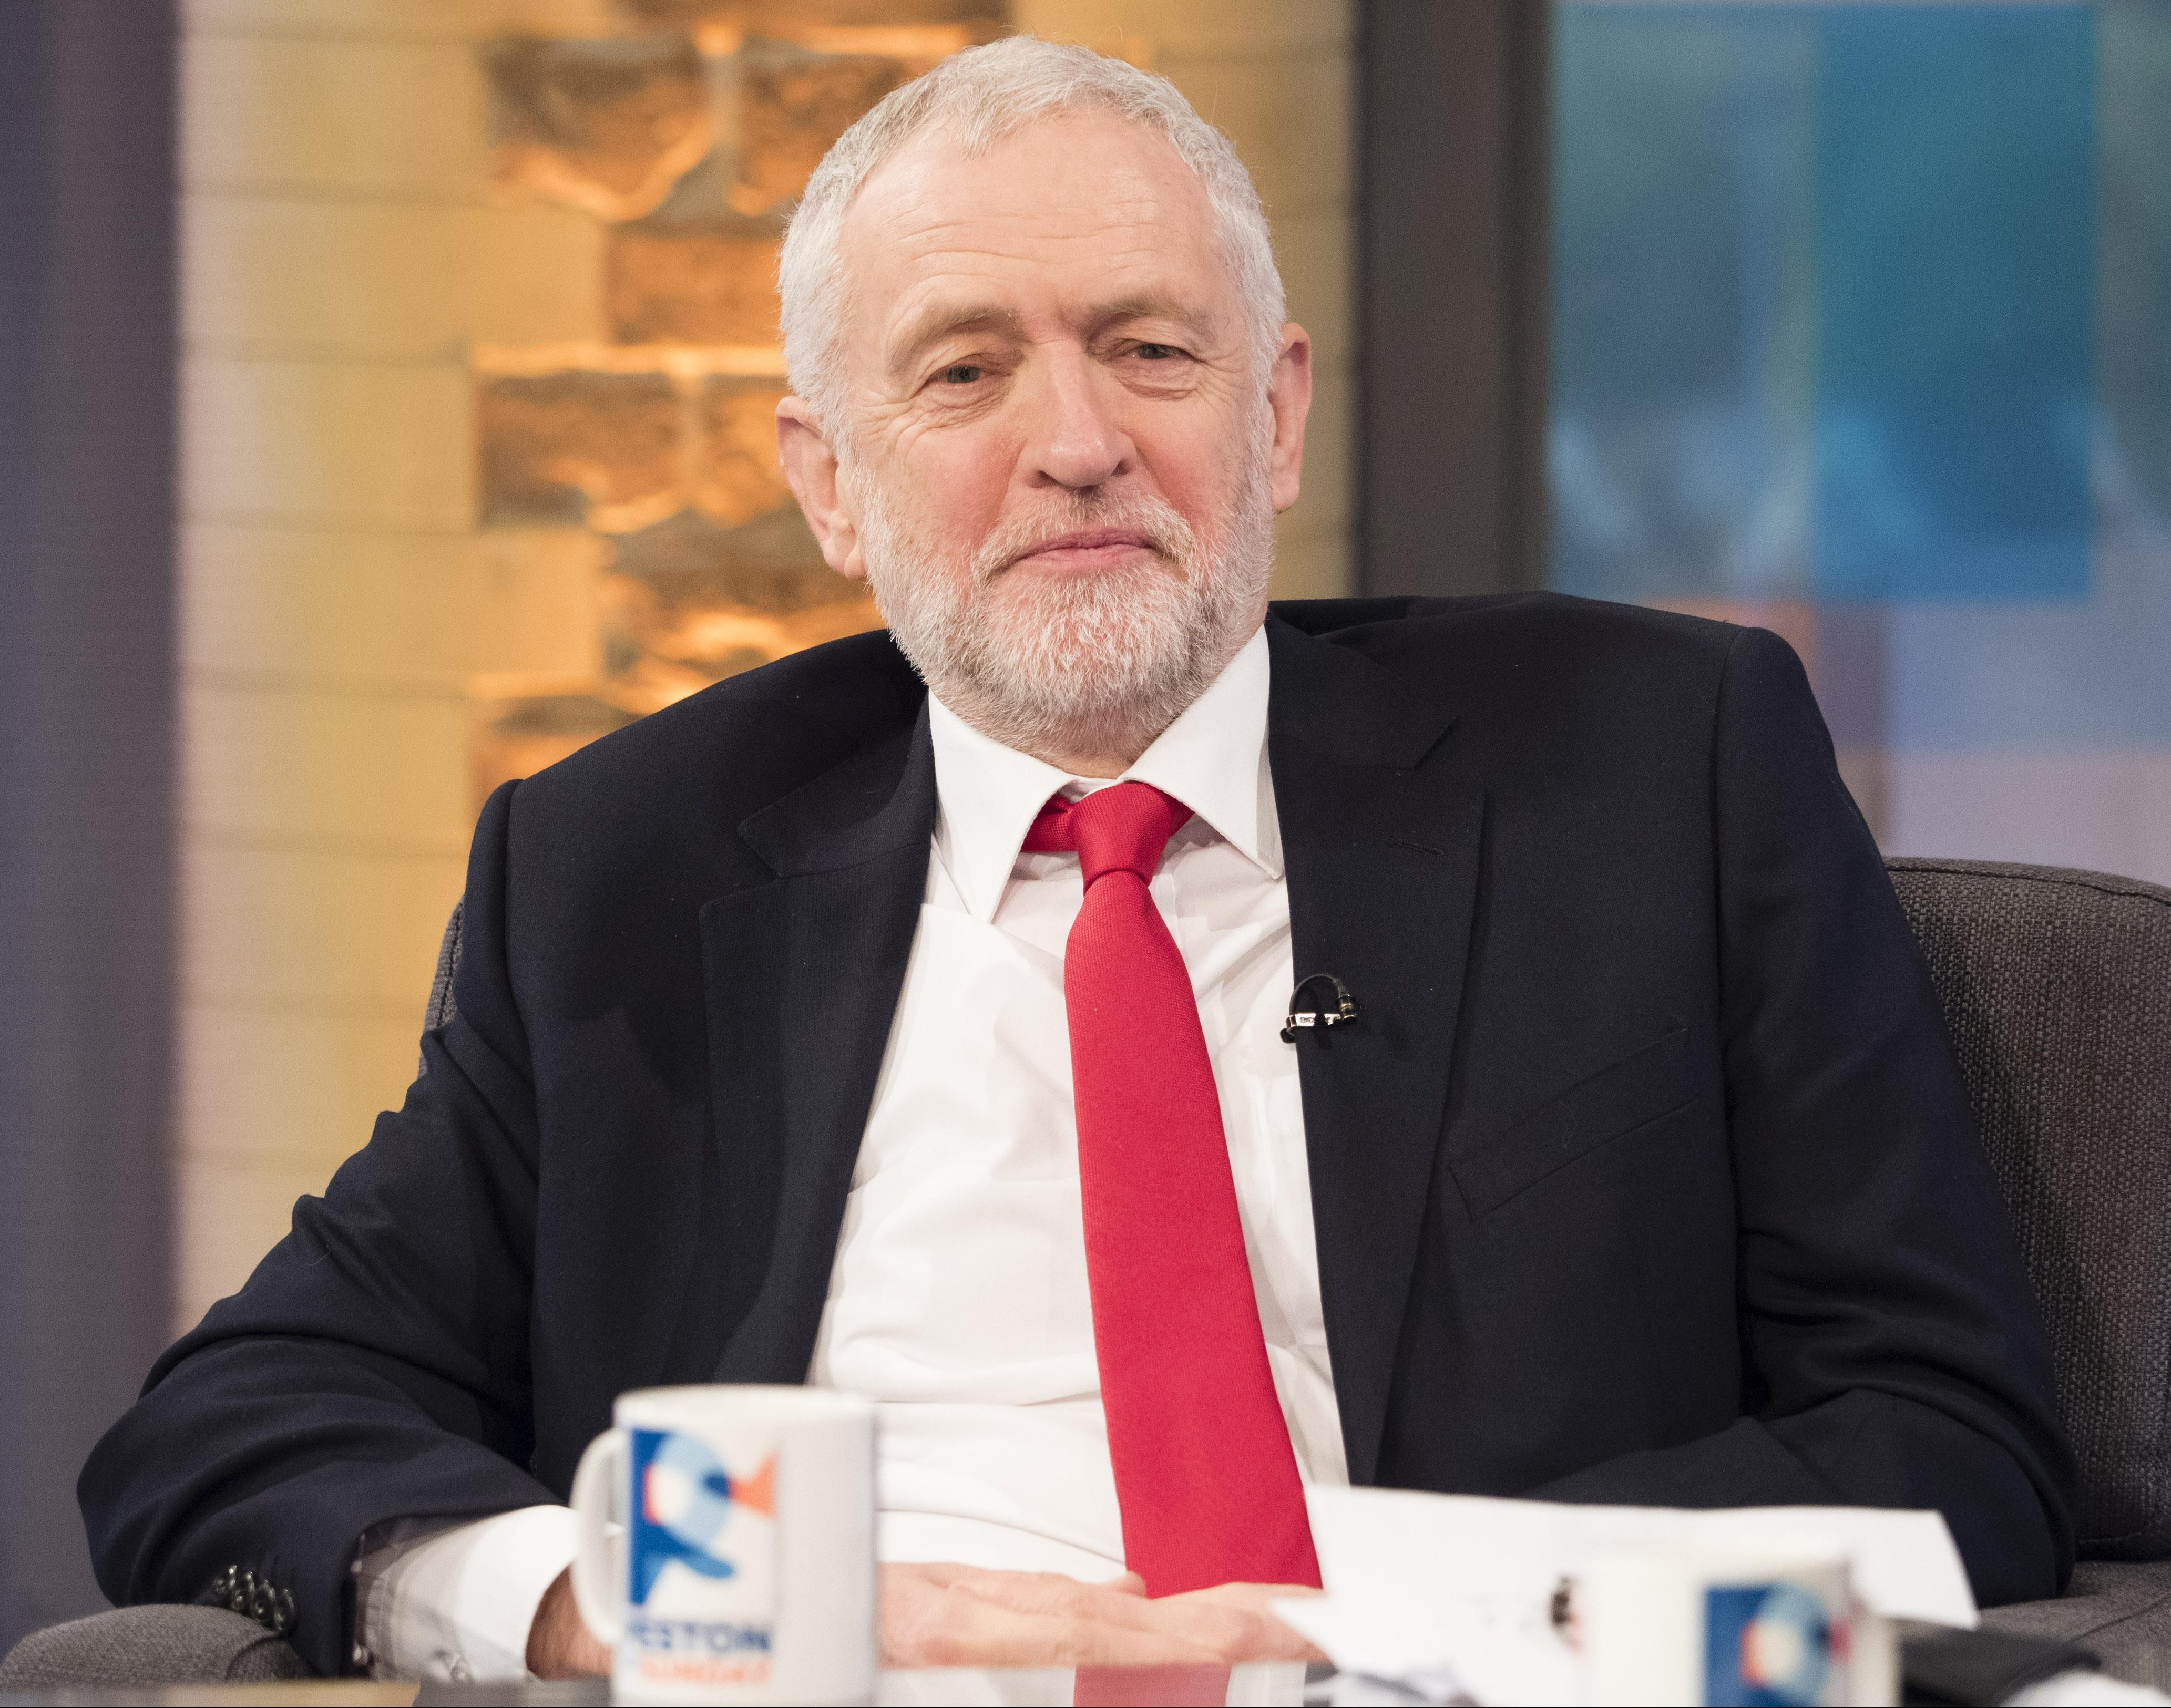 Corbyn tightens grip on Labour as three of his allies are elected to powerful ruling body – defeating moderates including Eddie Izzard